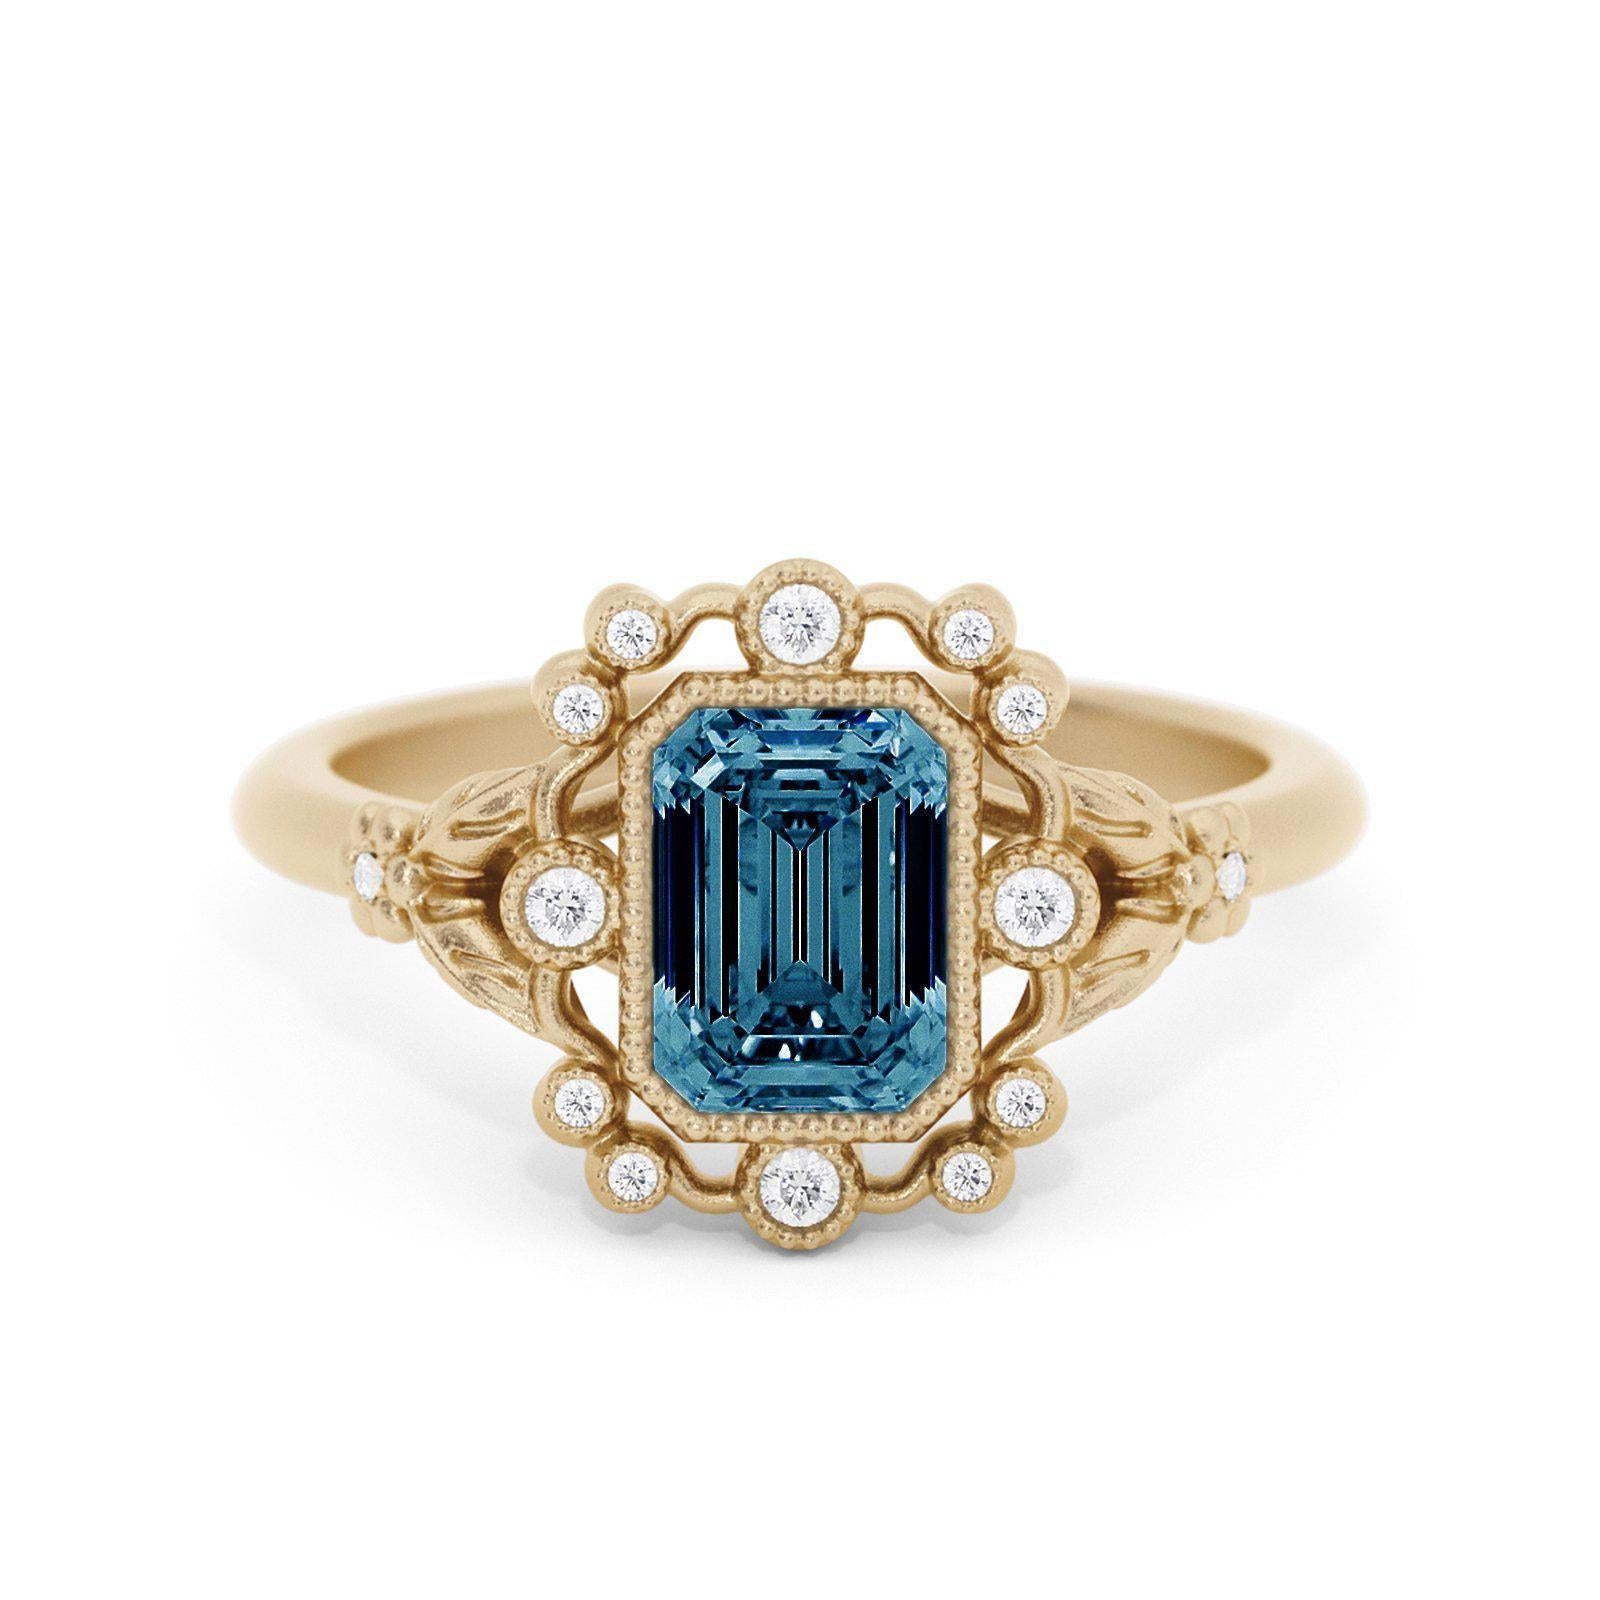 Mirabelle Emerald Cut Montana Sapphire Ring with leaves